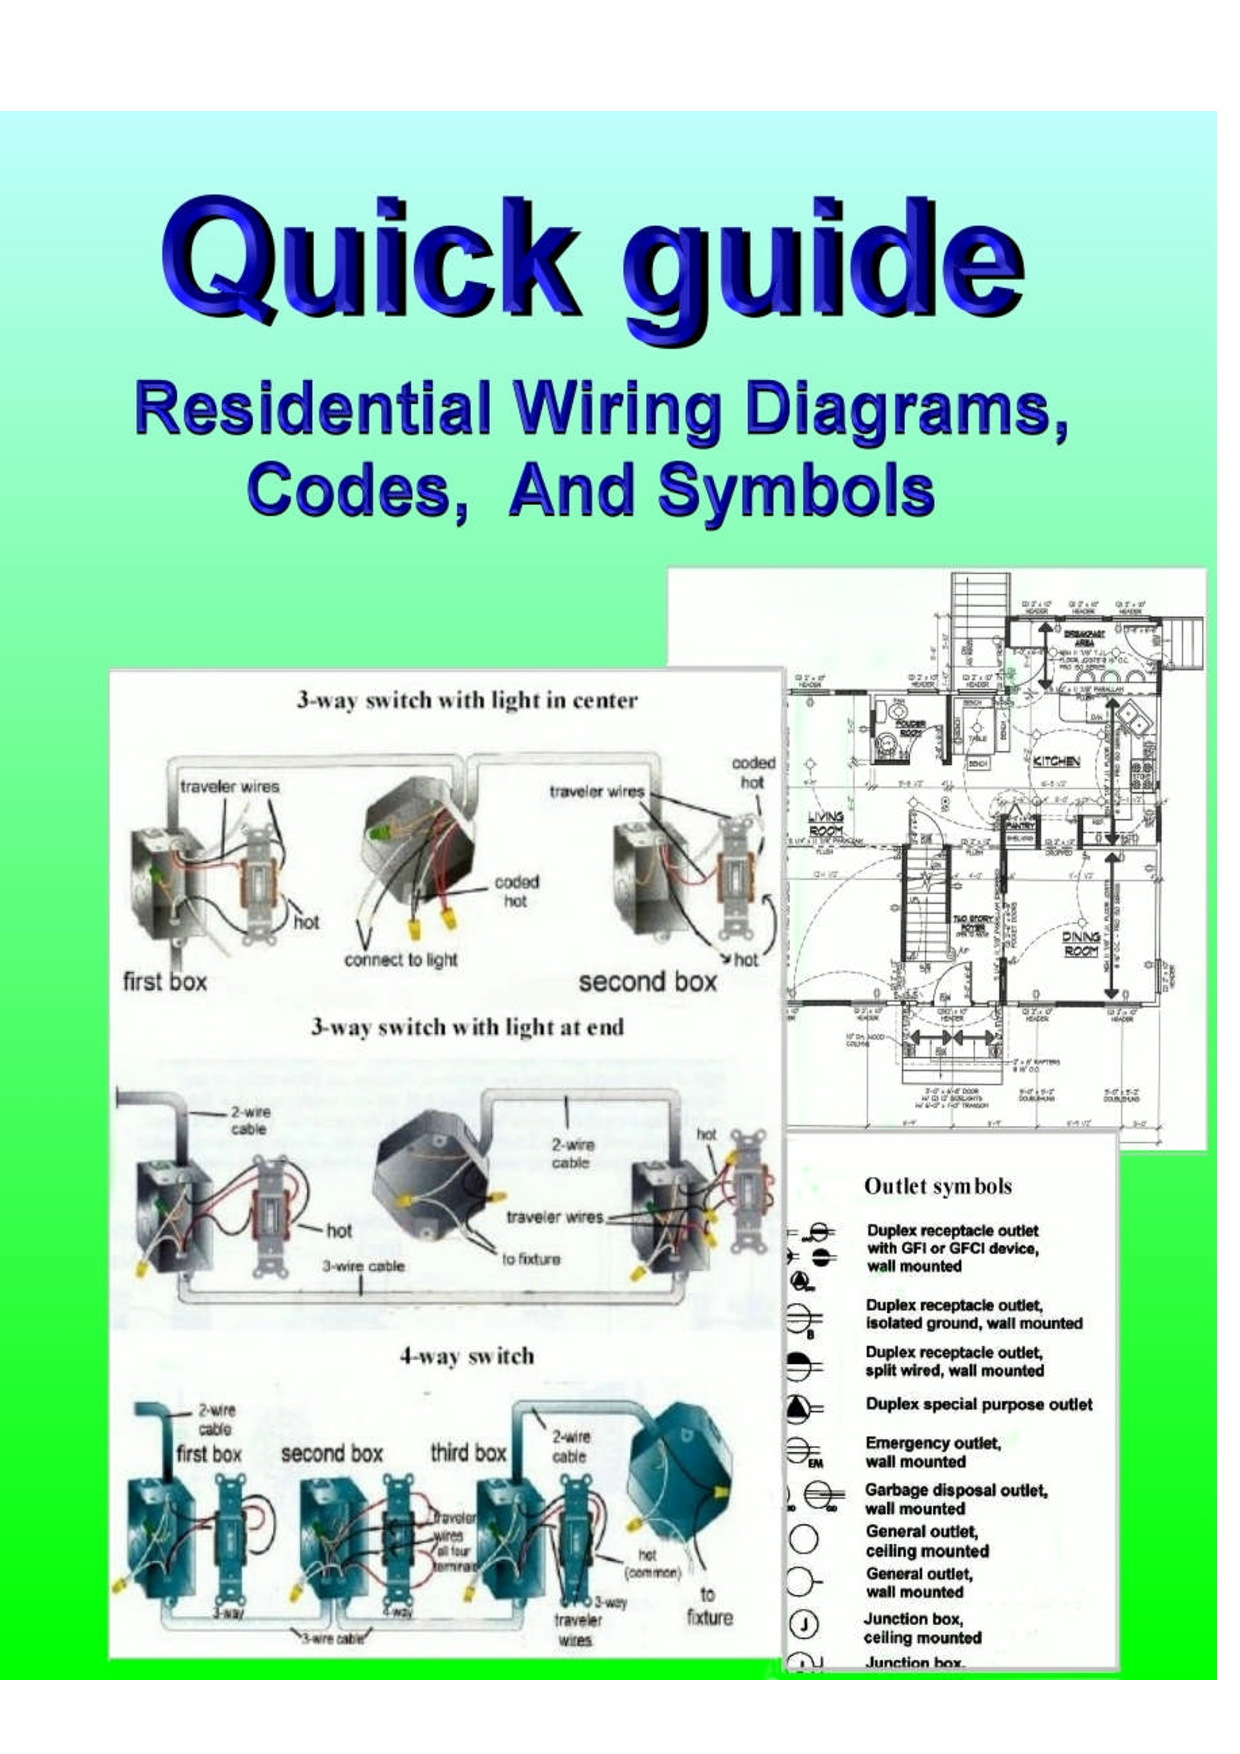 home electrical wiring diagrams electricidad electronica rh pinterest com diy home electrical wiring diagrams do it yourself house wiring diagram